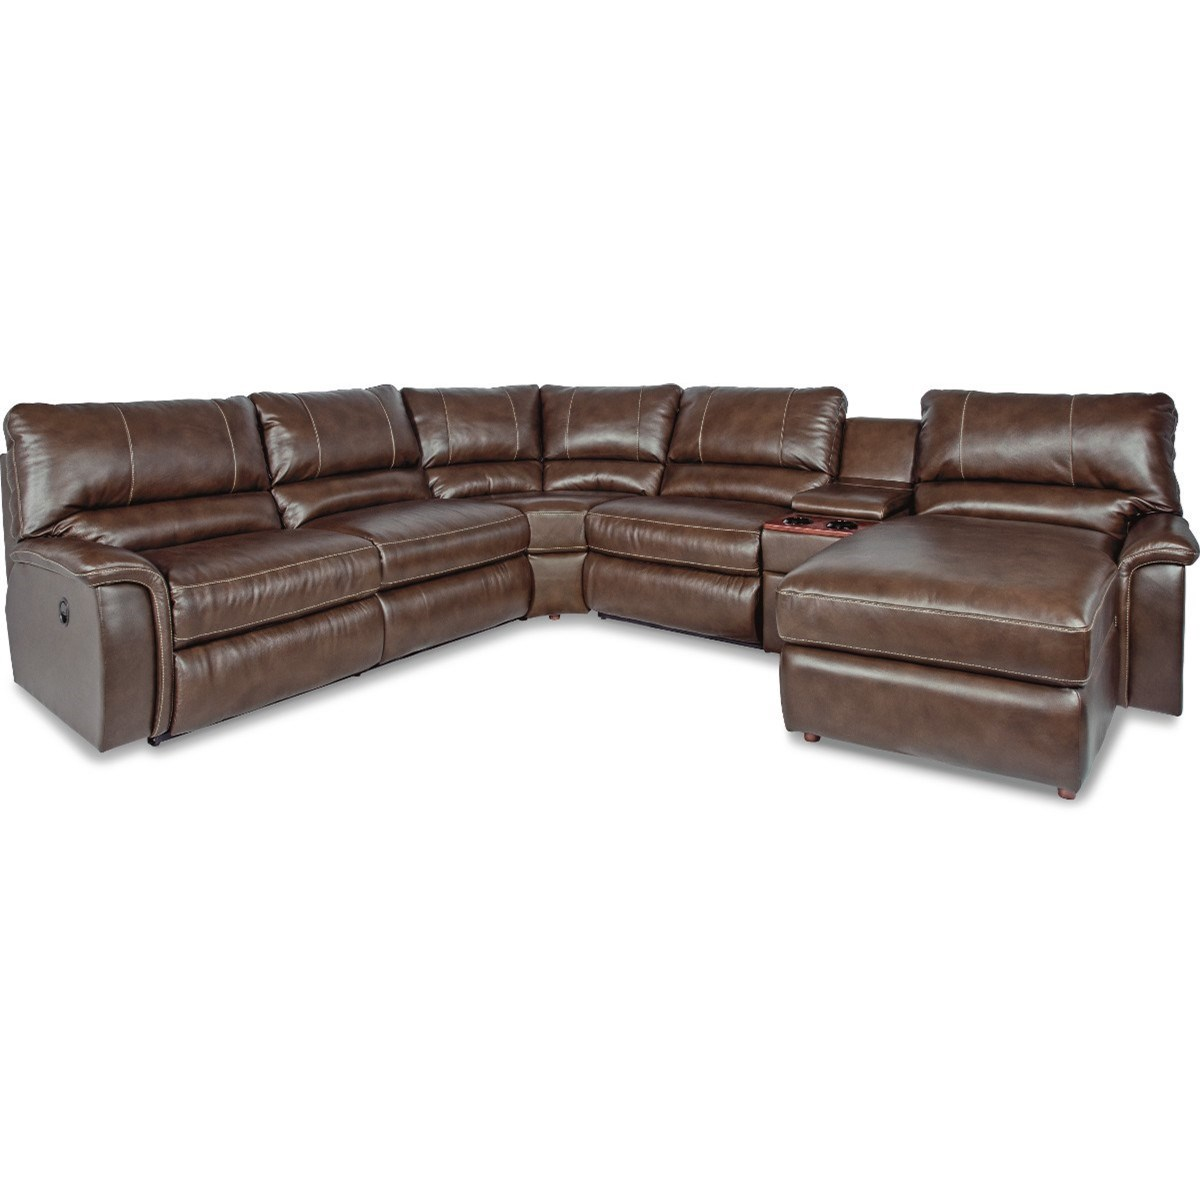 ASPEN 6 Pc Pwr Reclining Sectional Sofa by La-Z-Boy at Sparks HomeStore